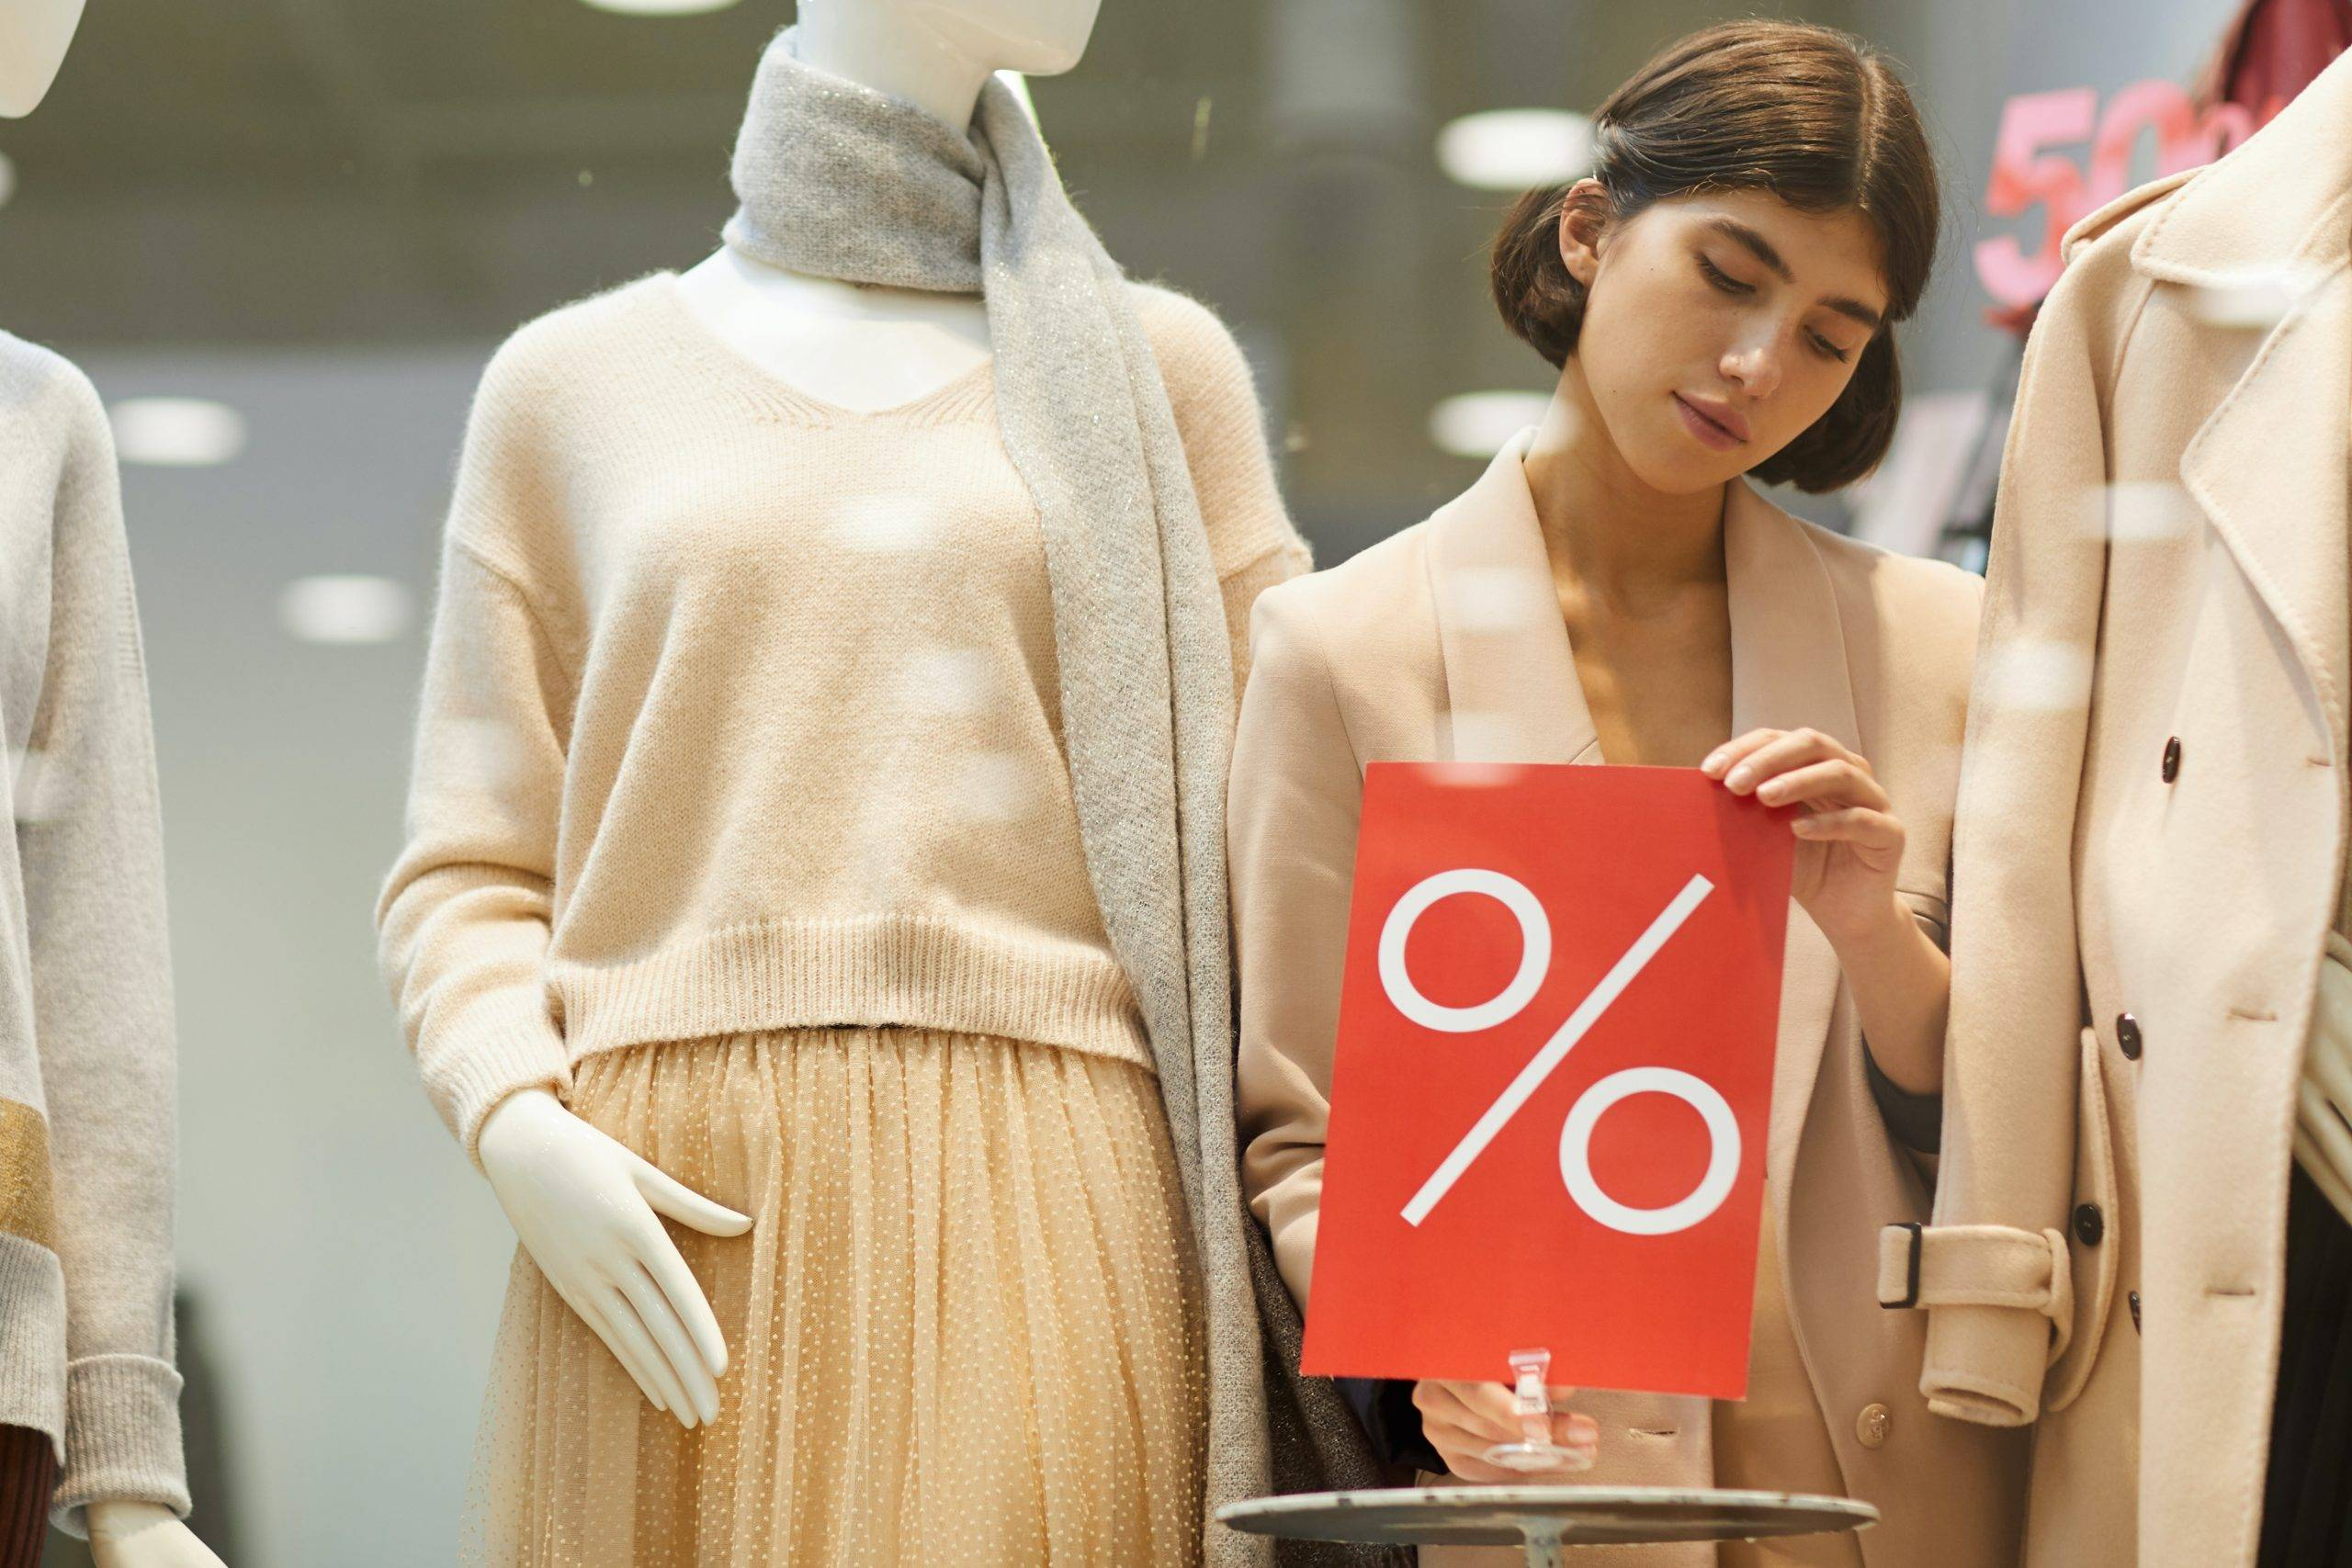 Recovering from the 2020 Retail Slump: Three Strategies for Sales Growth in 2021